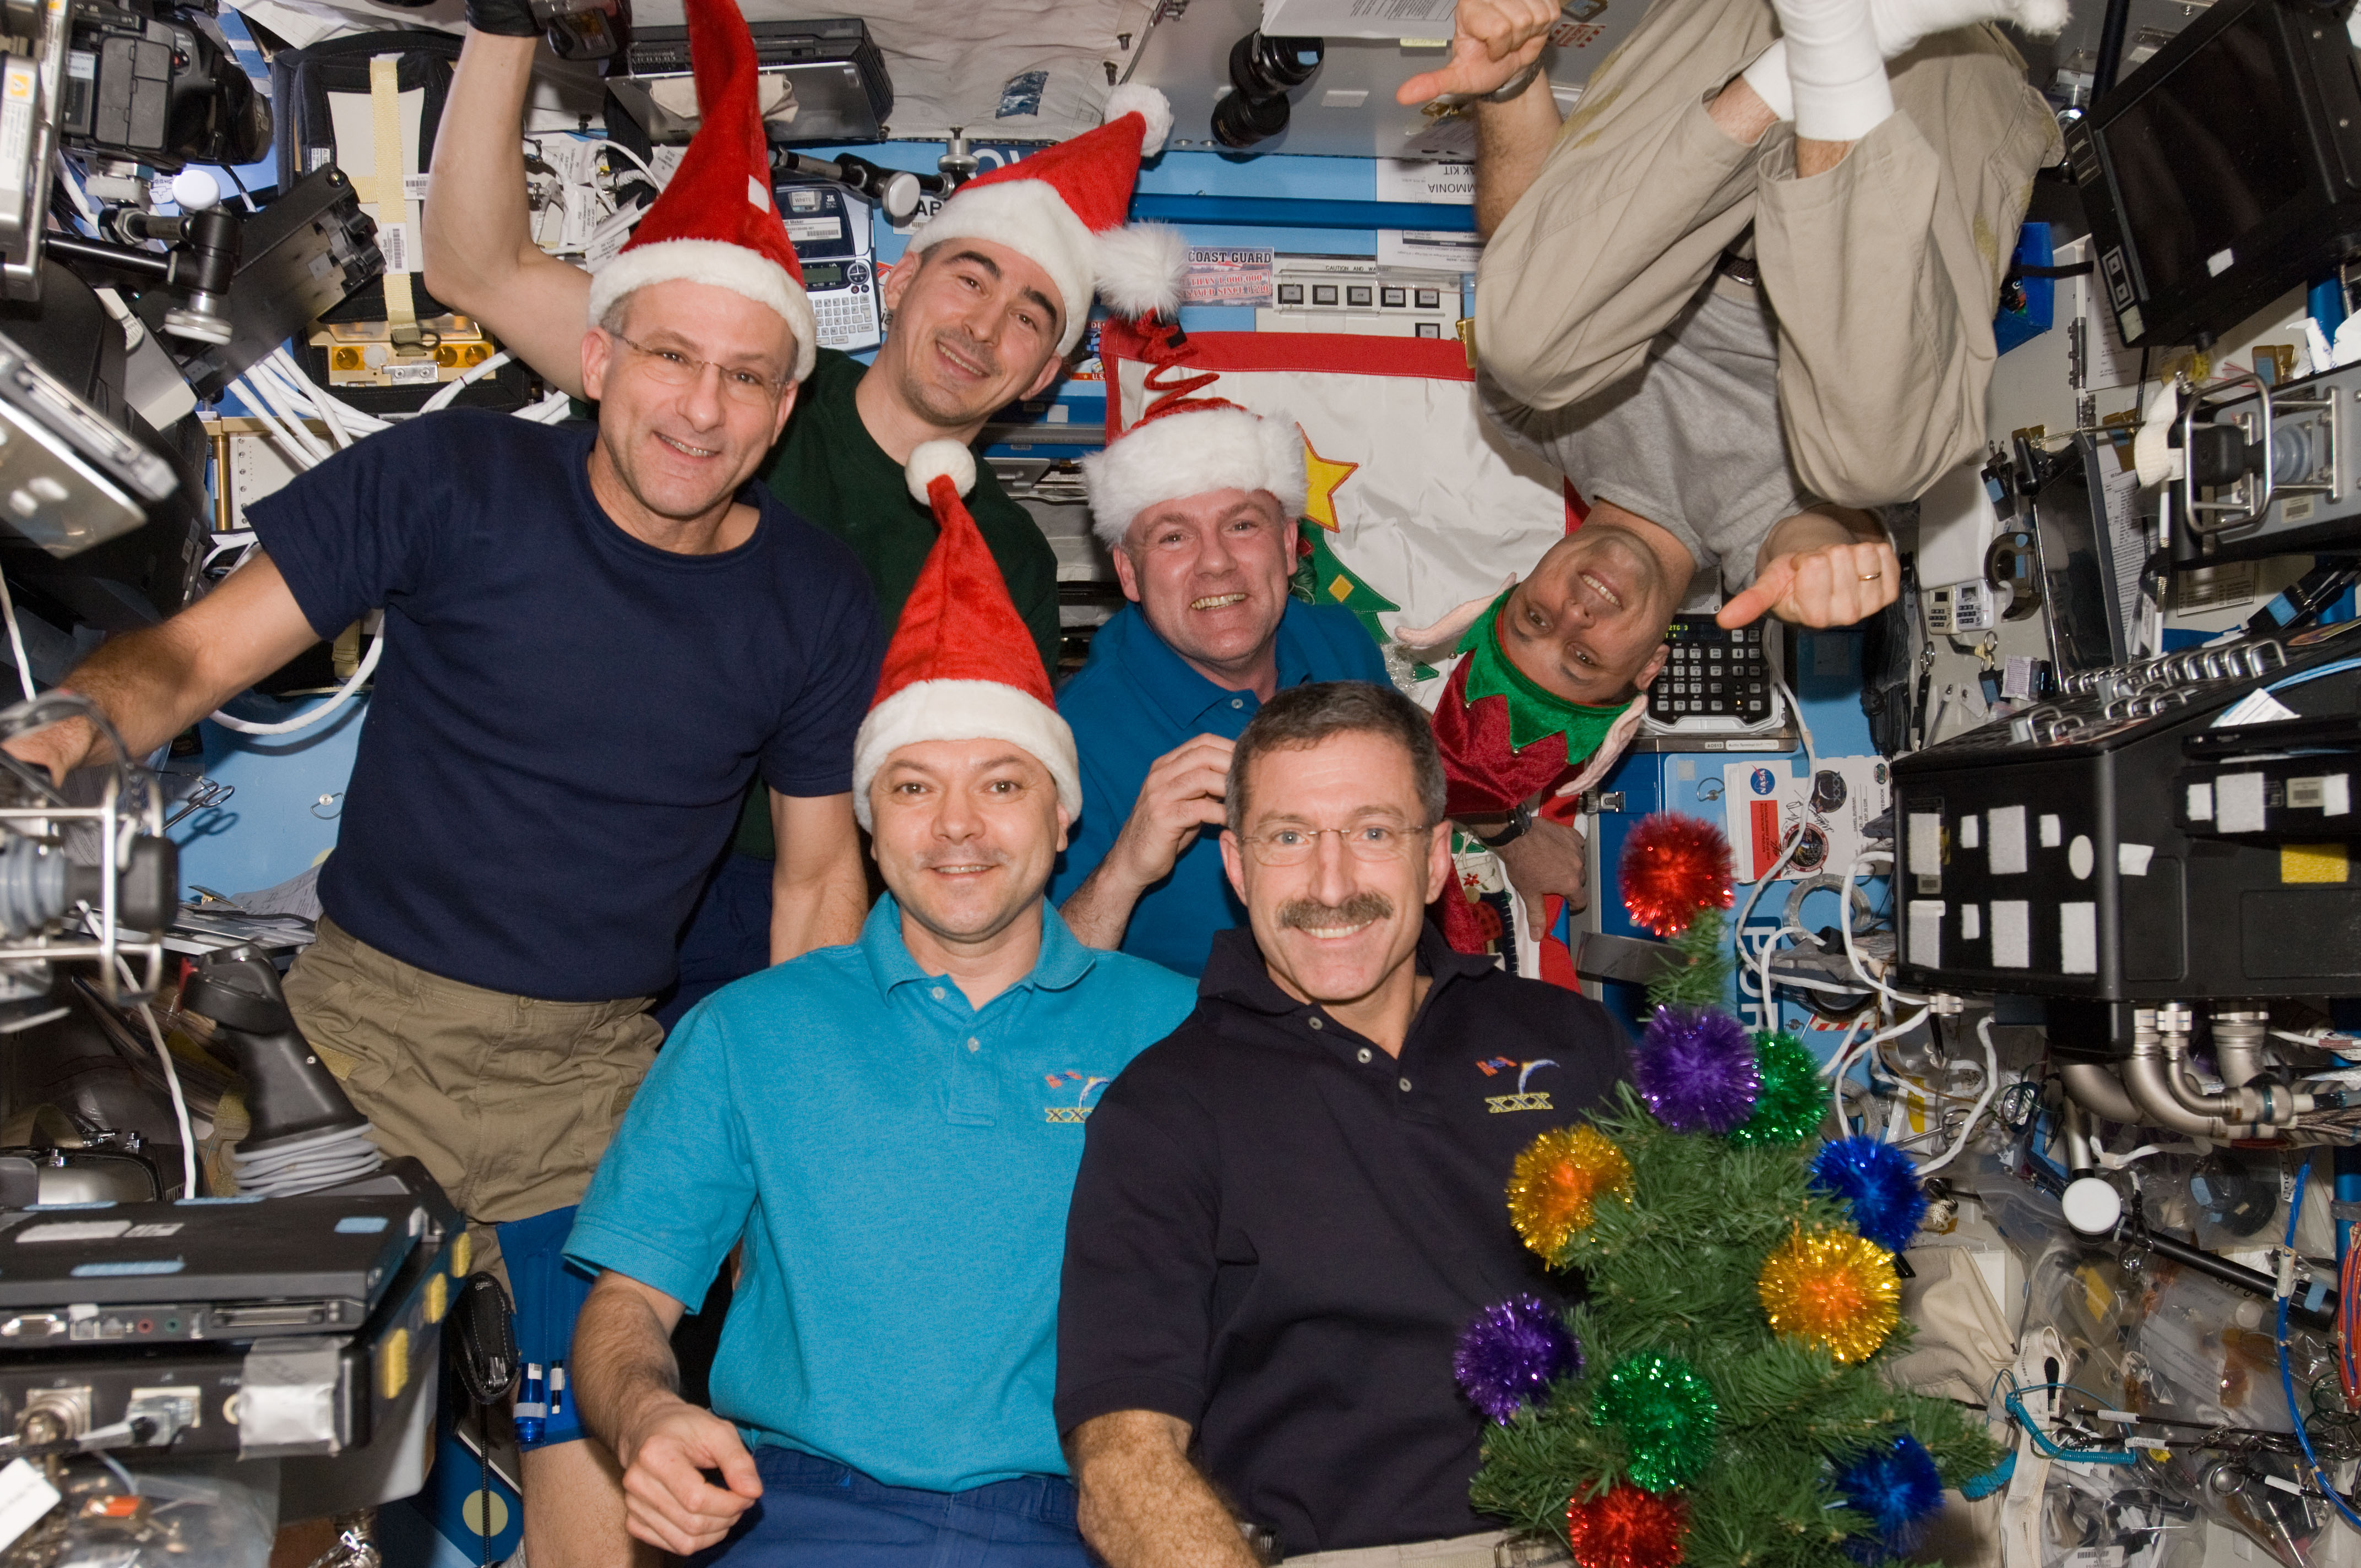 The ISS crews are quick to get into the Christmas spirit and enjoy the New Year celebrations. Image credit: NASA